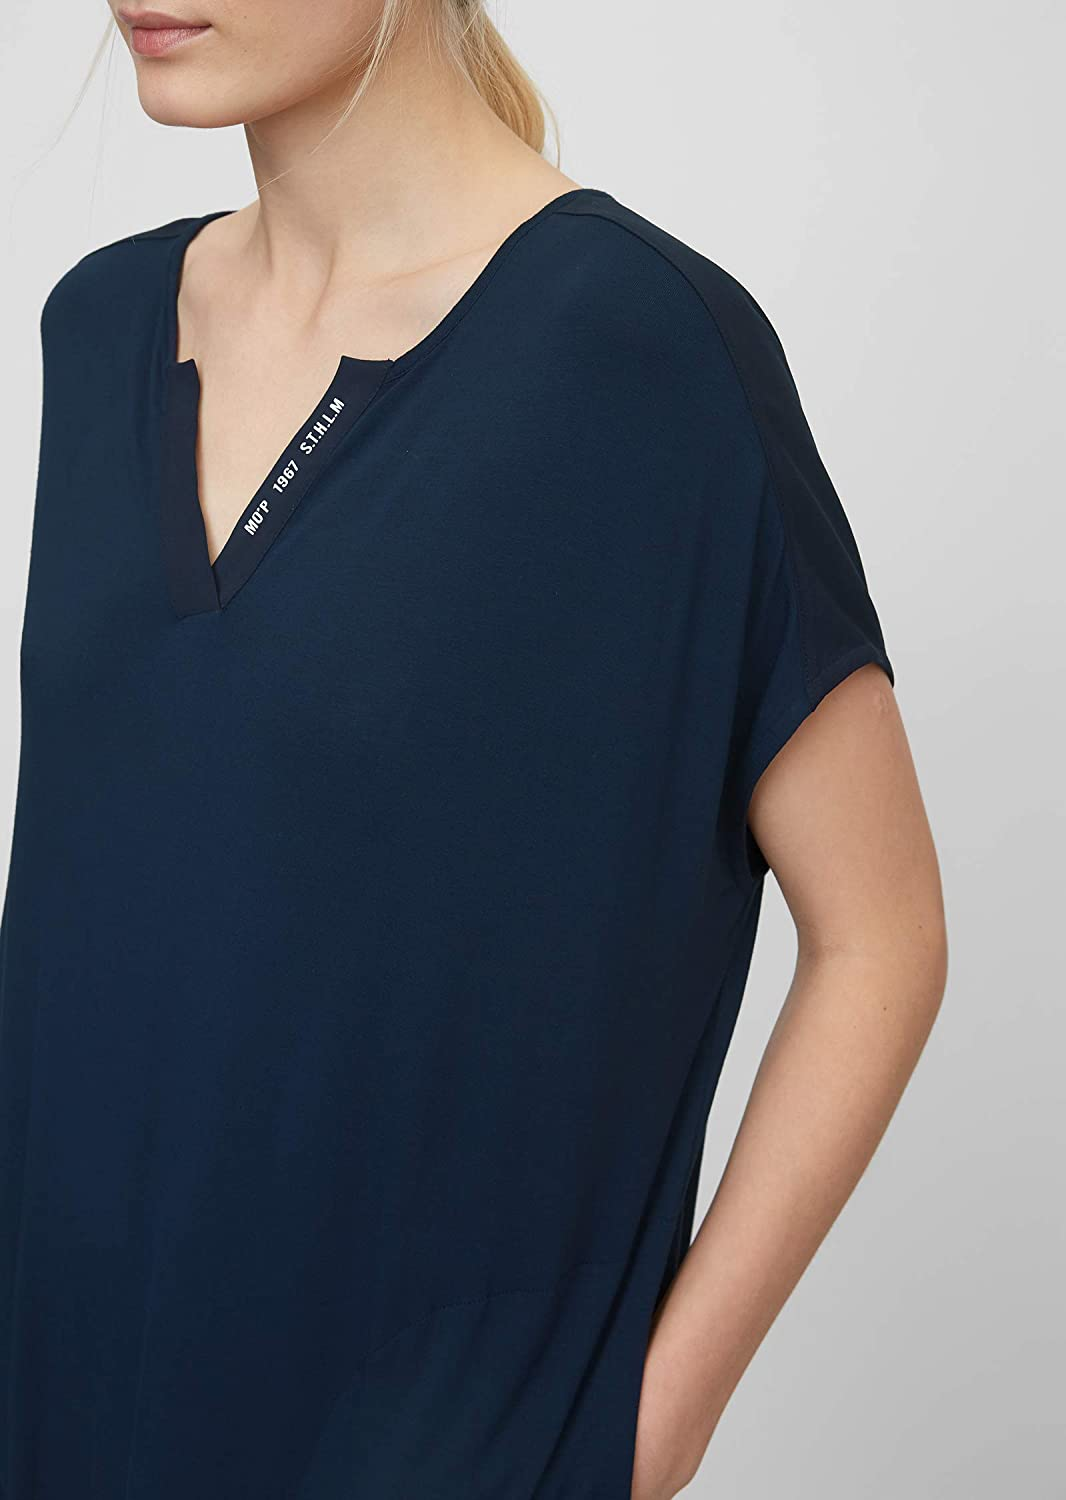 Marc O/'Polo Body /& Beach Damen W-Sleepshirt Crew-Neck Nachthemd